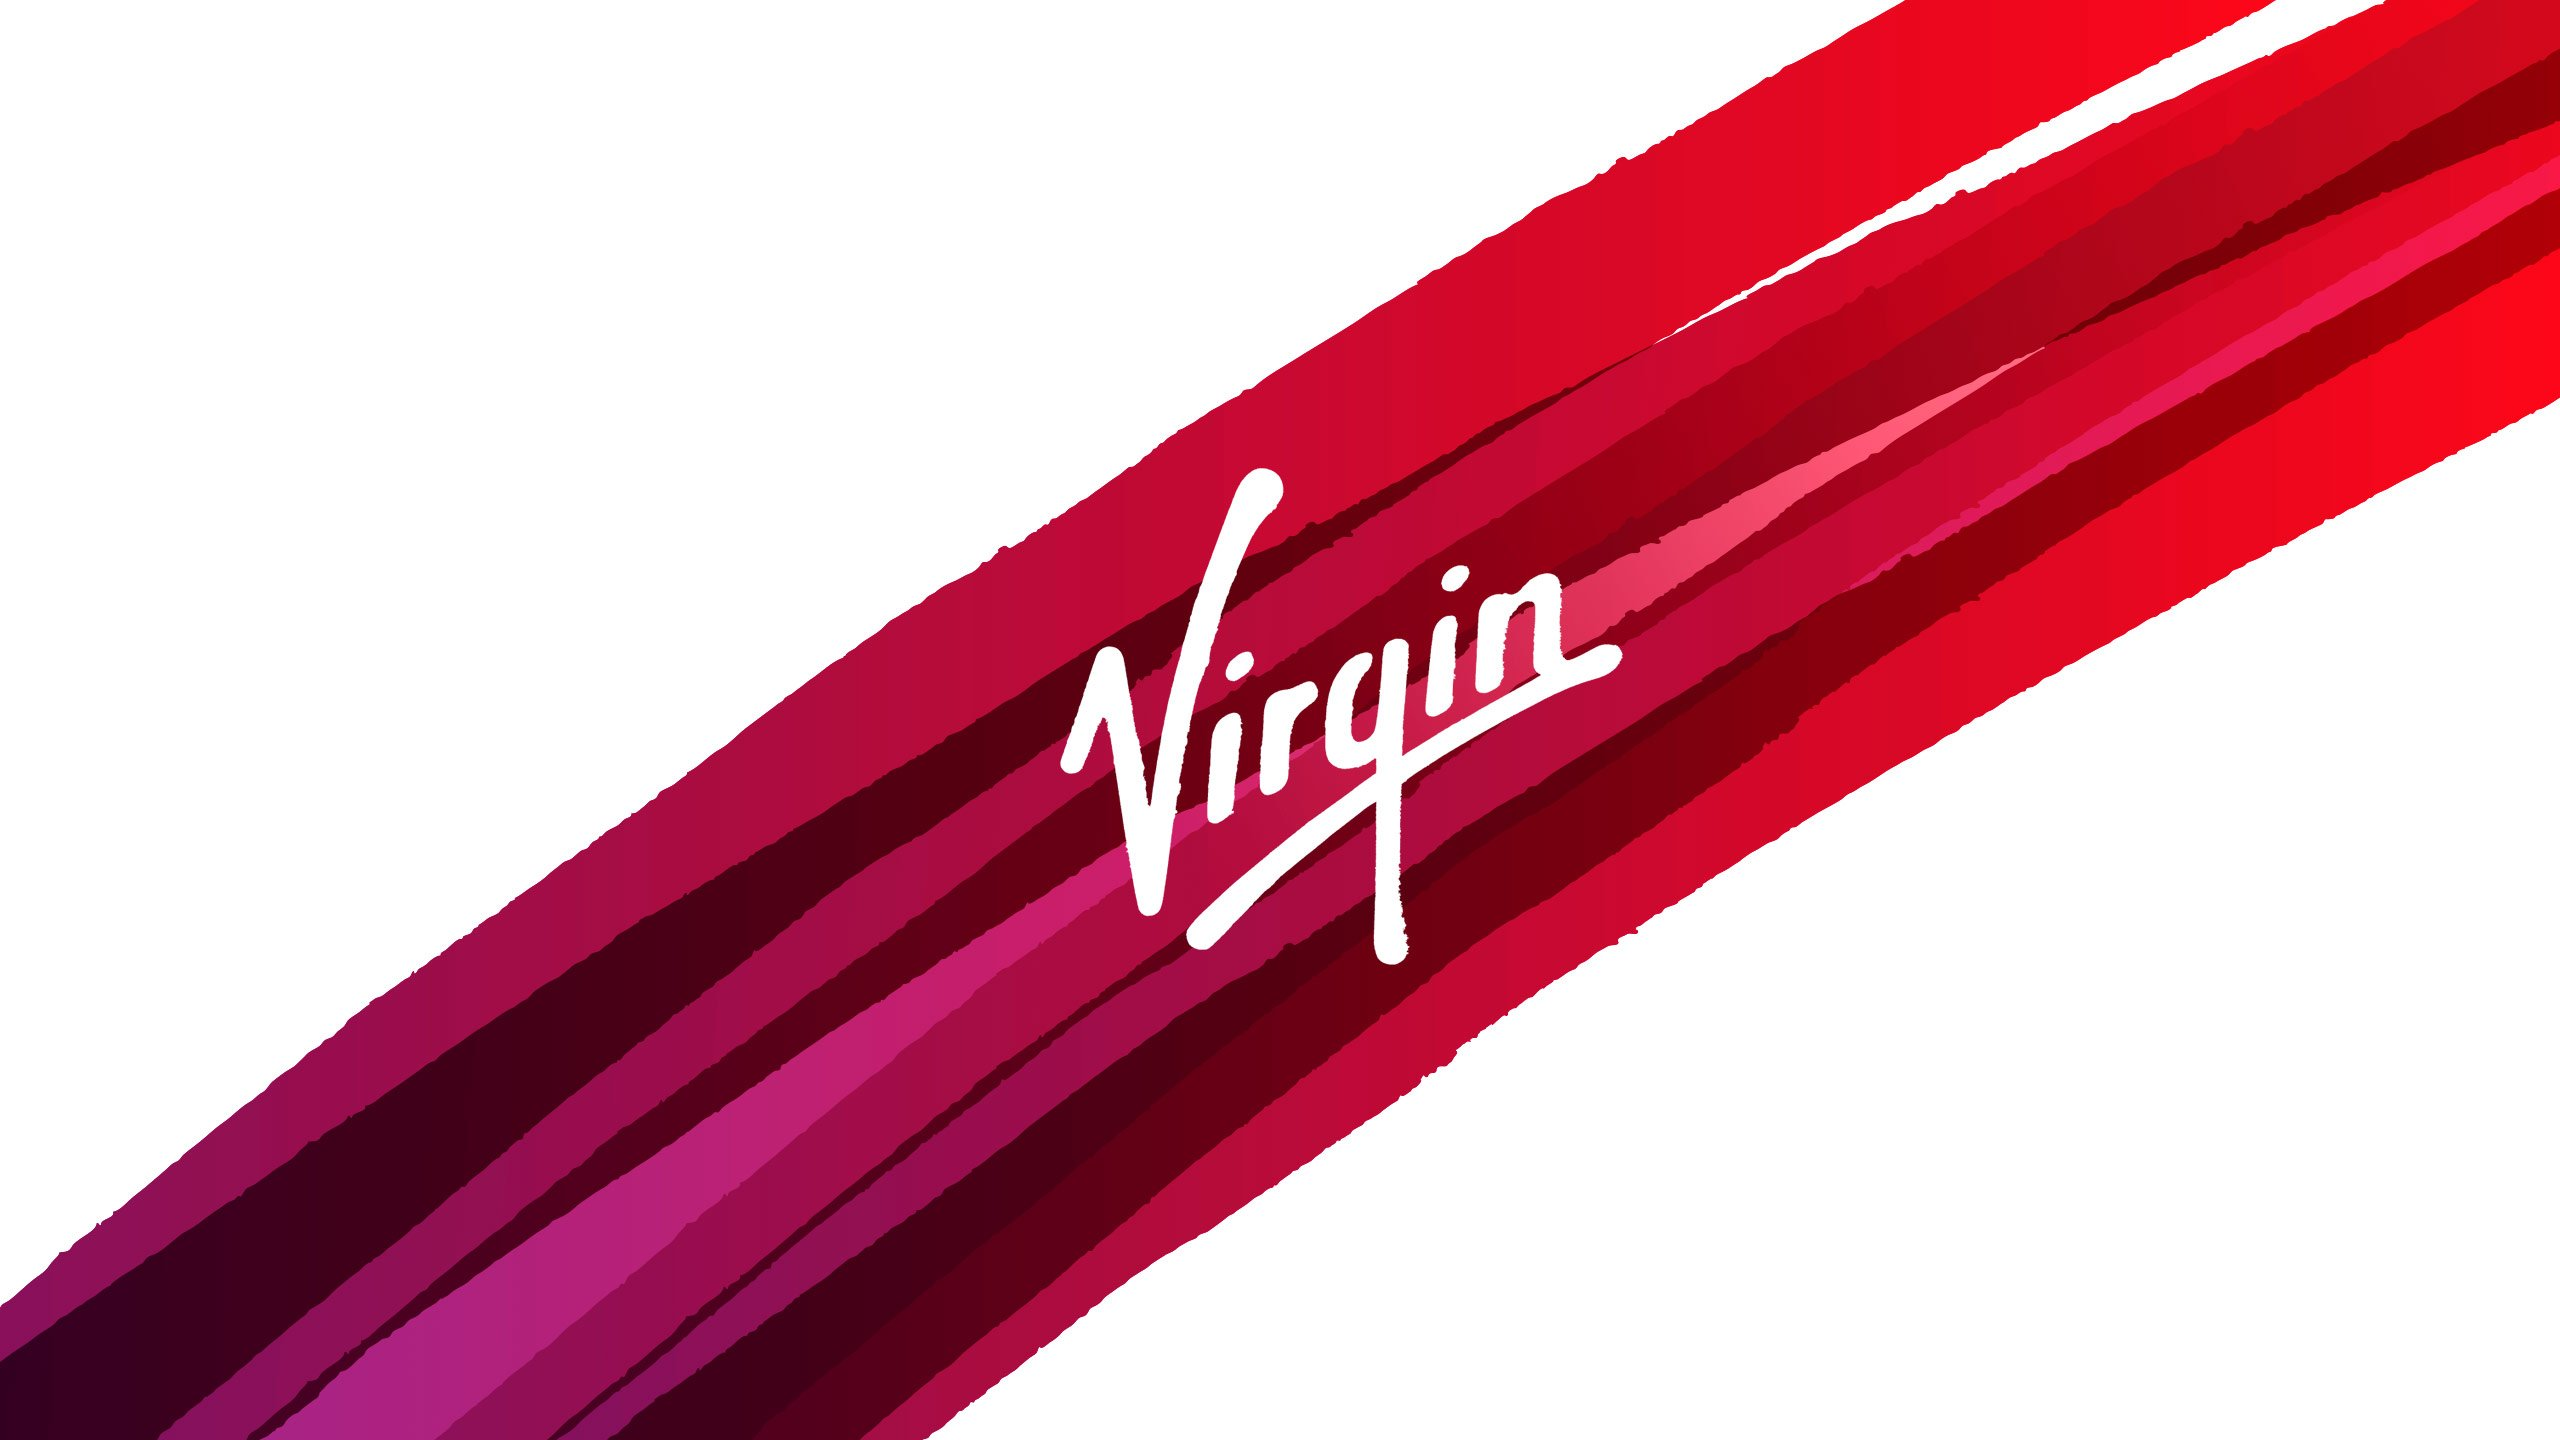 Cool Virgin Company Logo Wallpaper PaperPull 2560x1440